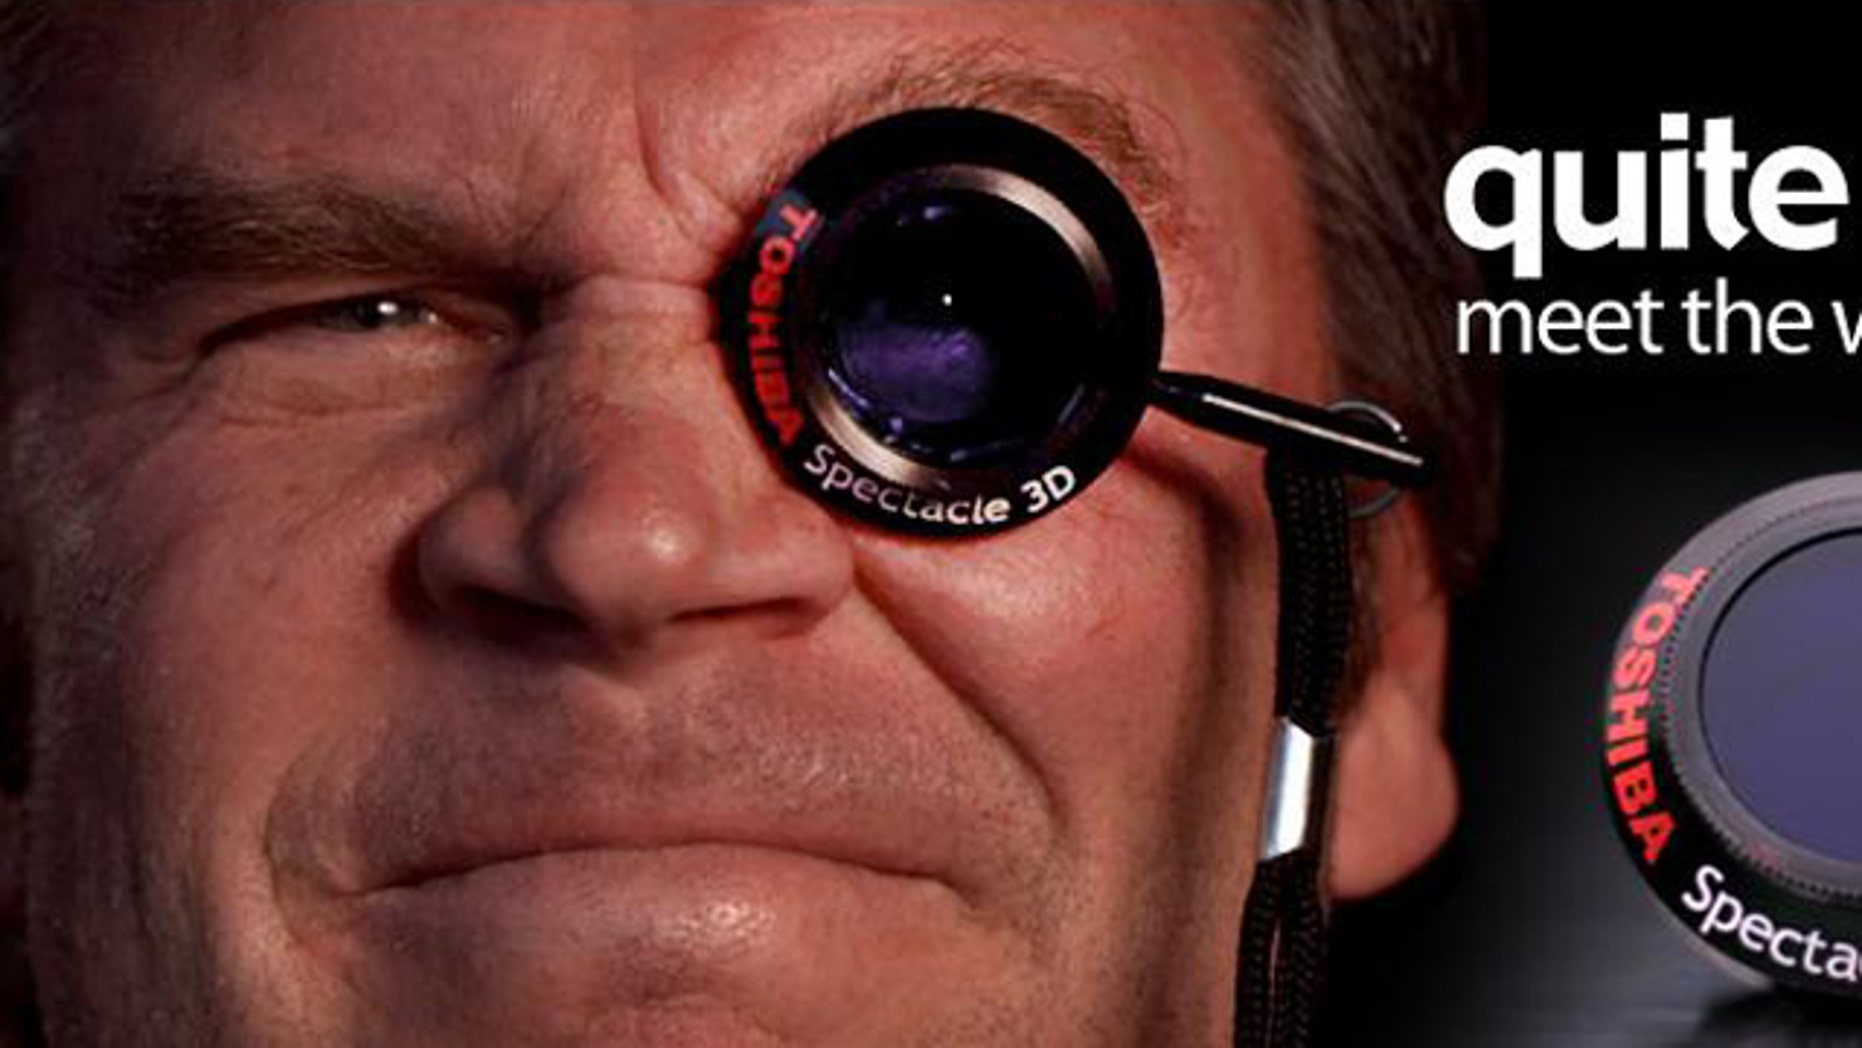 """To celebrate April Fool's Day 2011, Toshiba has unveiled the Spectacle: """"The world's first and only 3D monocle."""""""